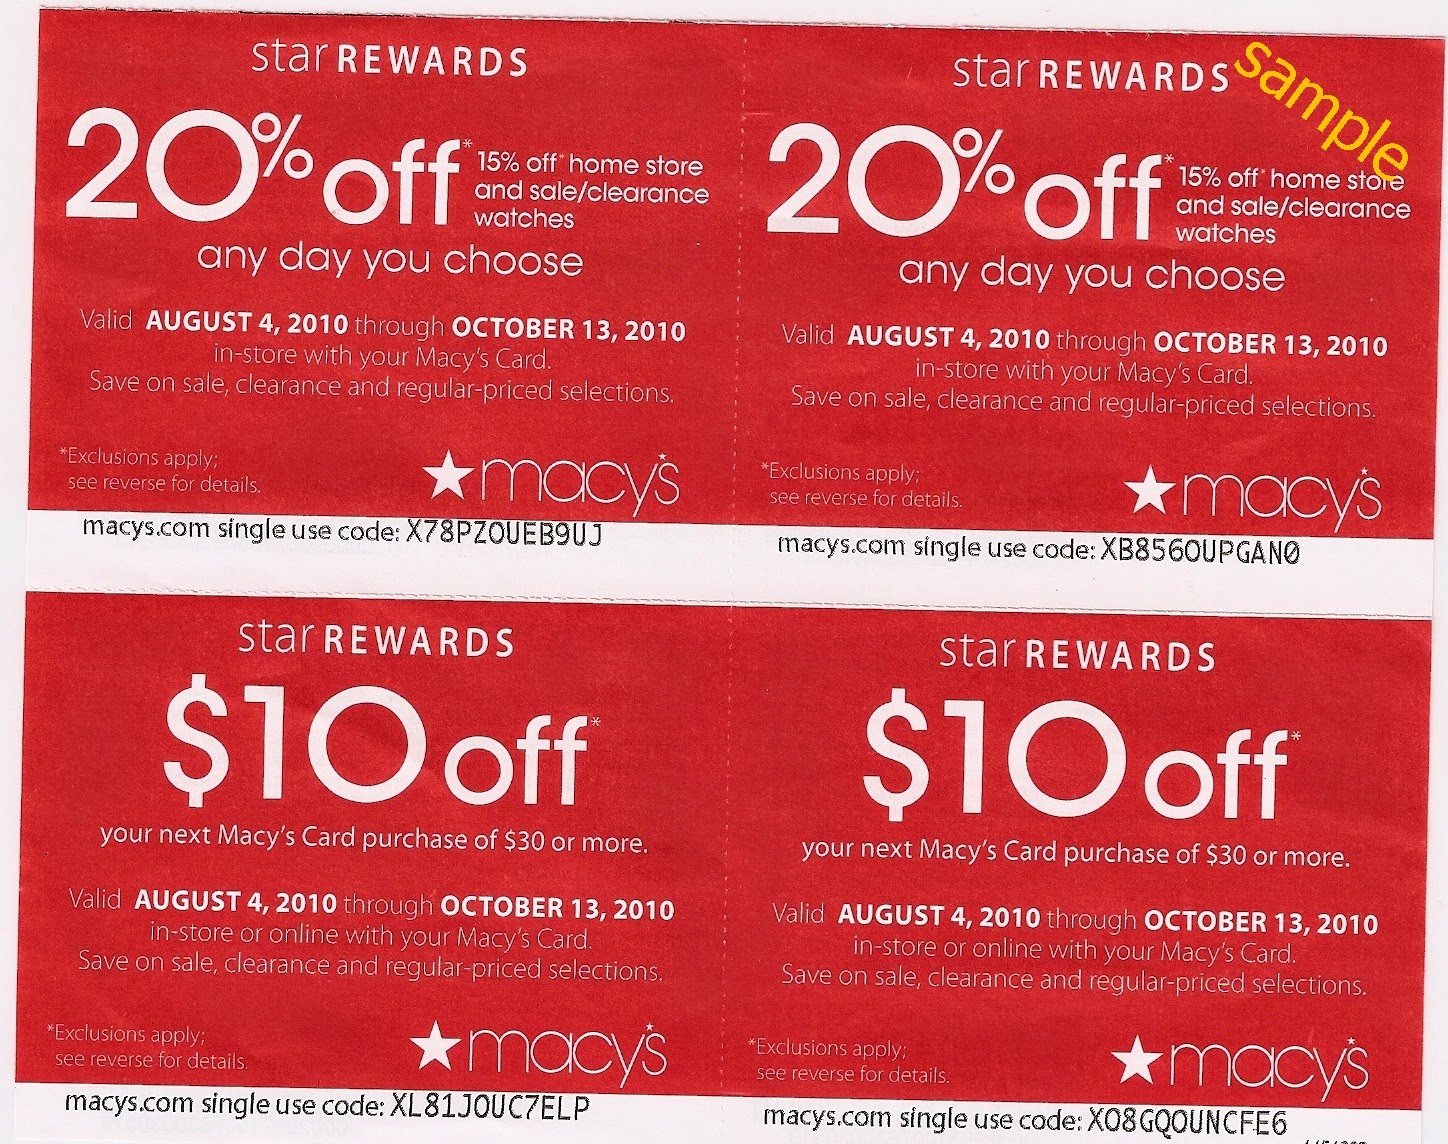 Macy's Shopping Guide